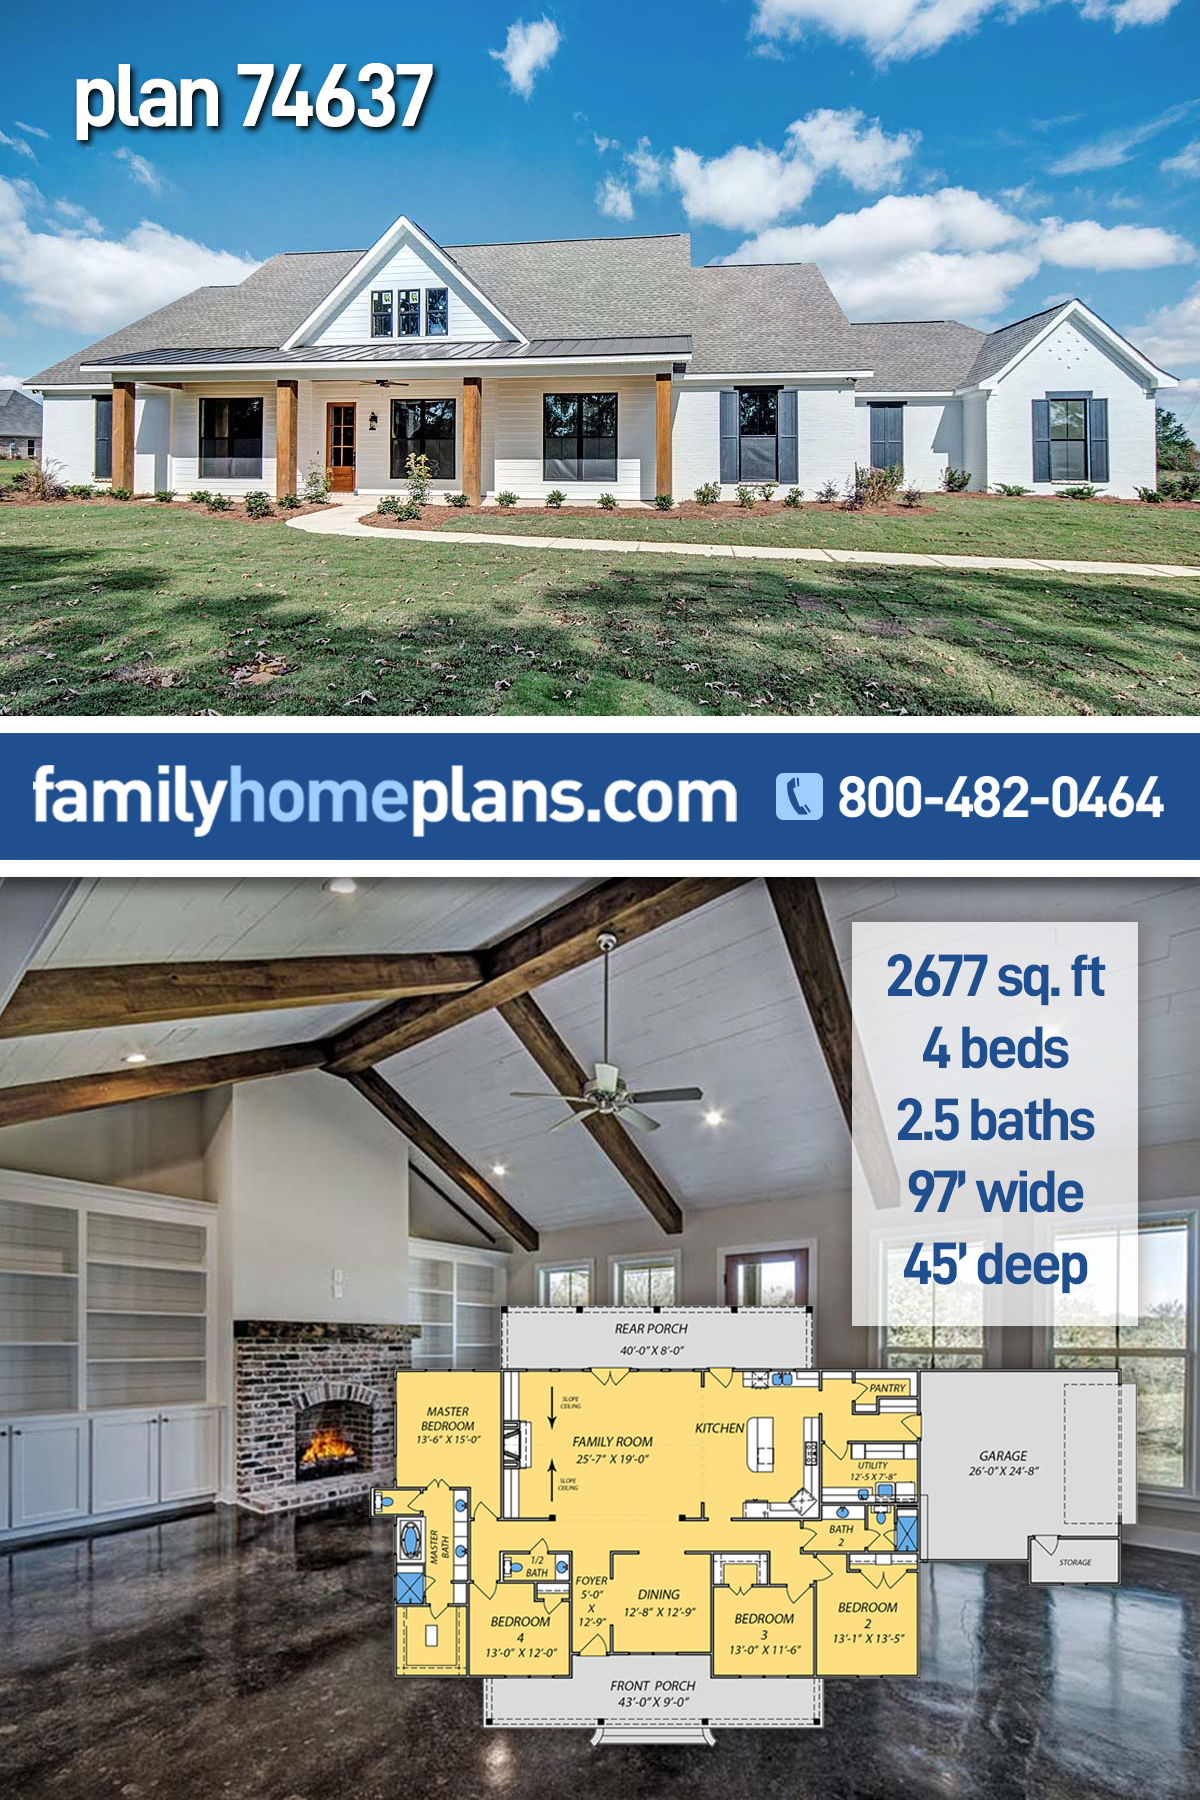 Craftsman, Farmhouse, Traditional House Plan 74637 with 4 Beds, 3 Baths, 2 Car Garage